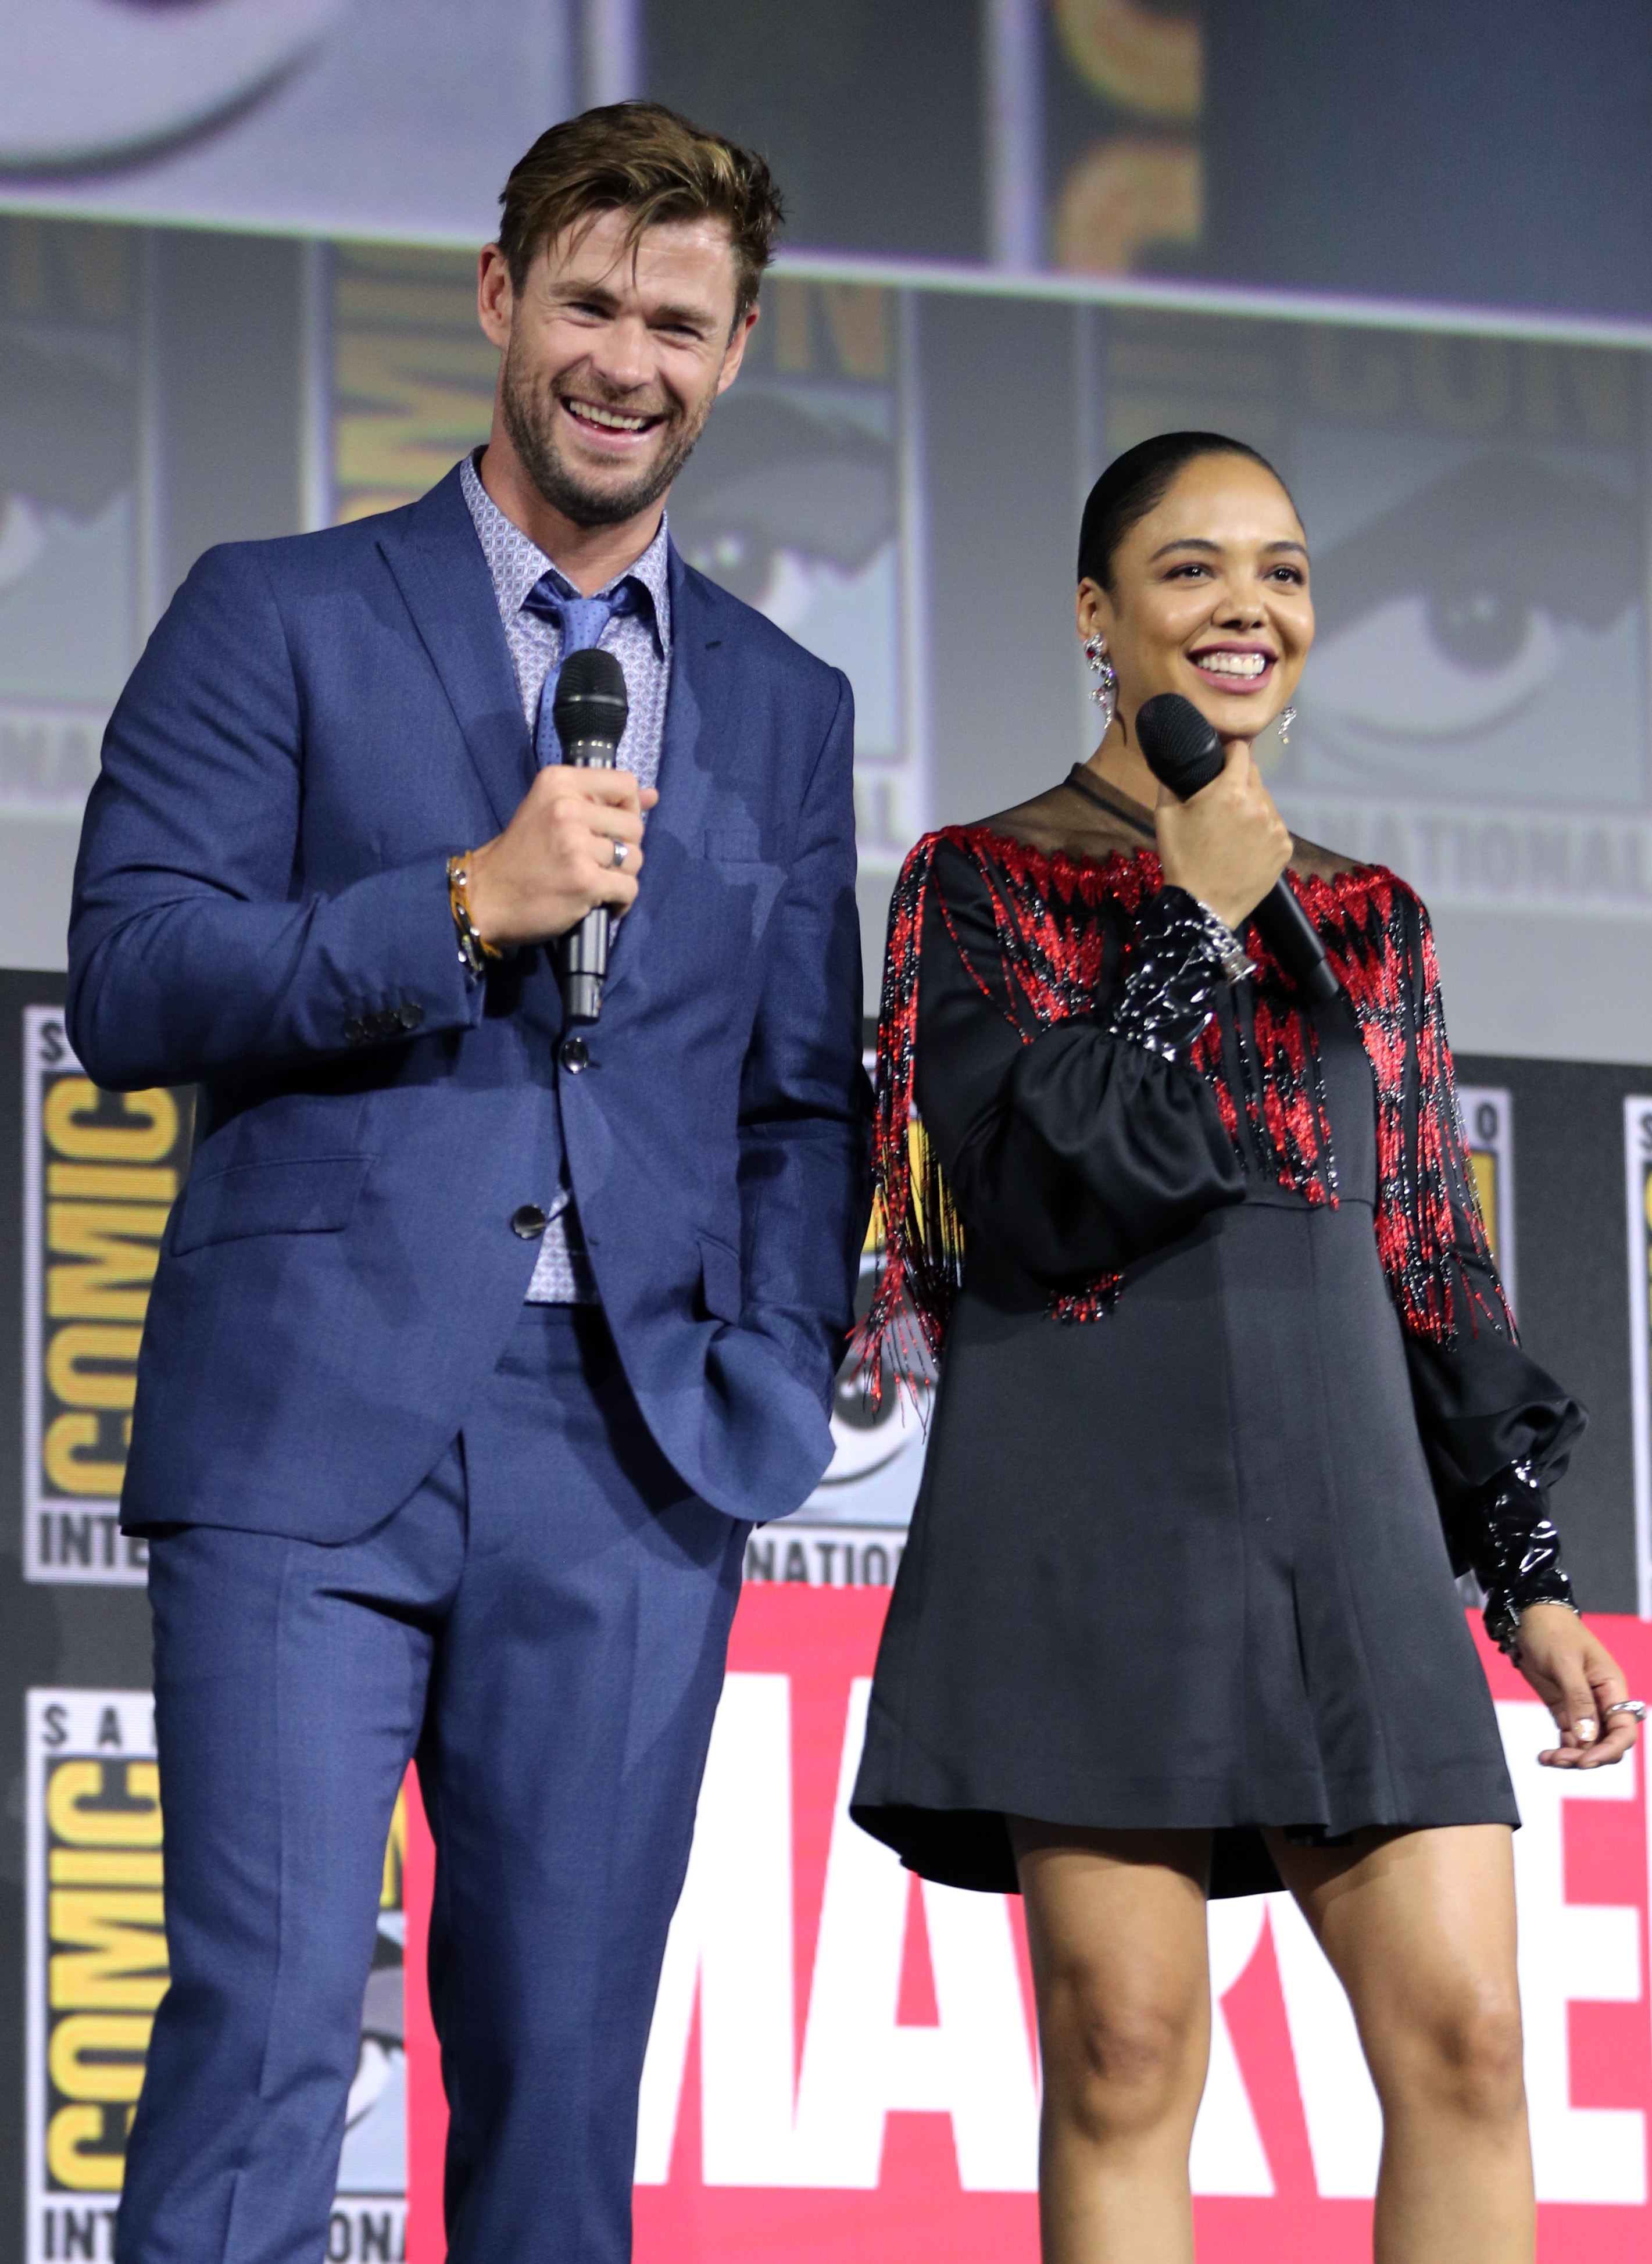 Chris Hemsworth and Tessa ThompsonMarvel Studios panel, Comic-Con International, San Diego, USA - 20 Jul 2019